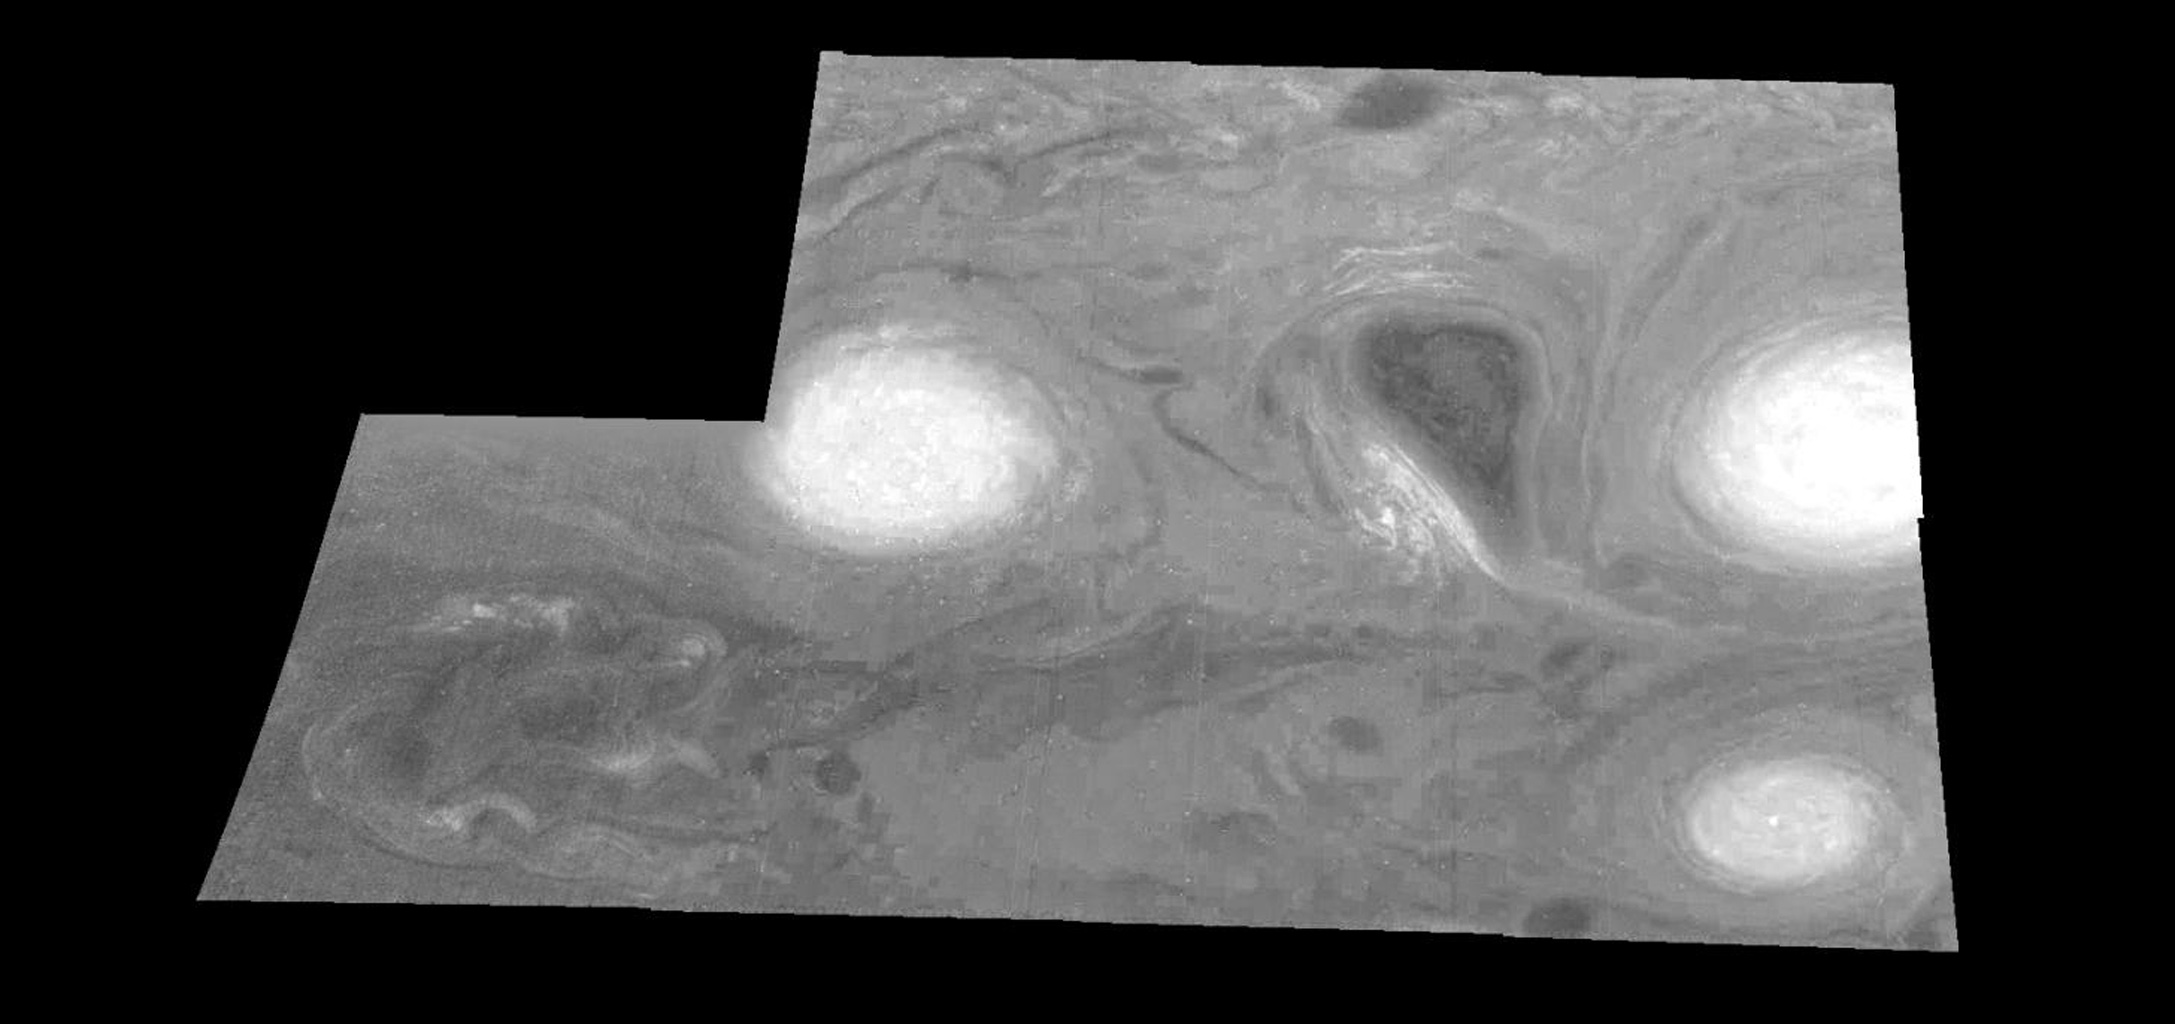 This mosaic shows the features of a hazy cloud layer tens of kilometers above Jupiter's main visible cloud deck as seen by NASA's Galileo orbiter on February 19, 1997.